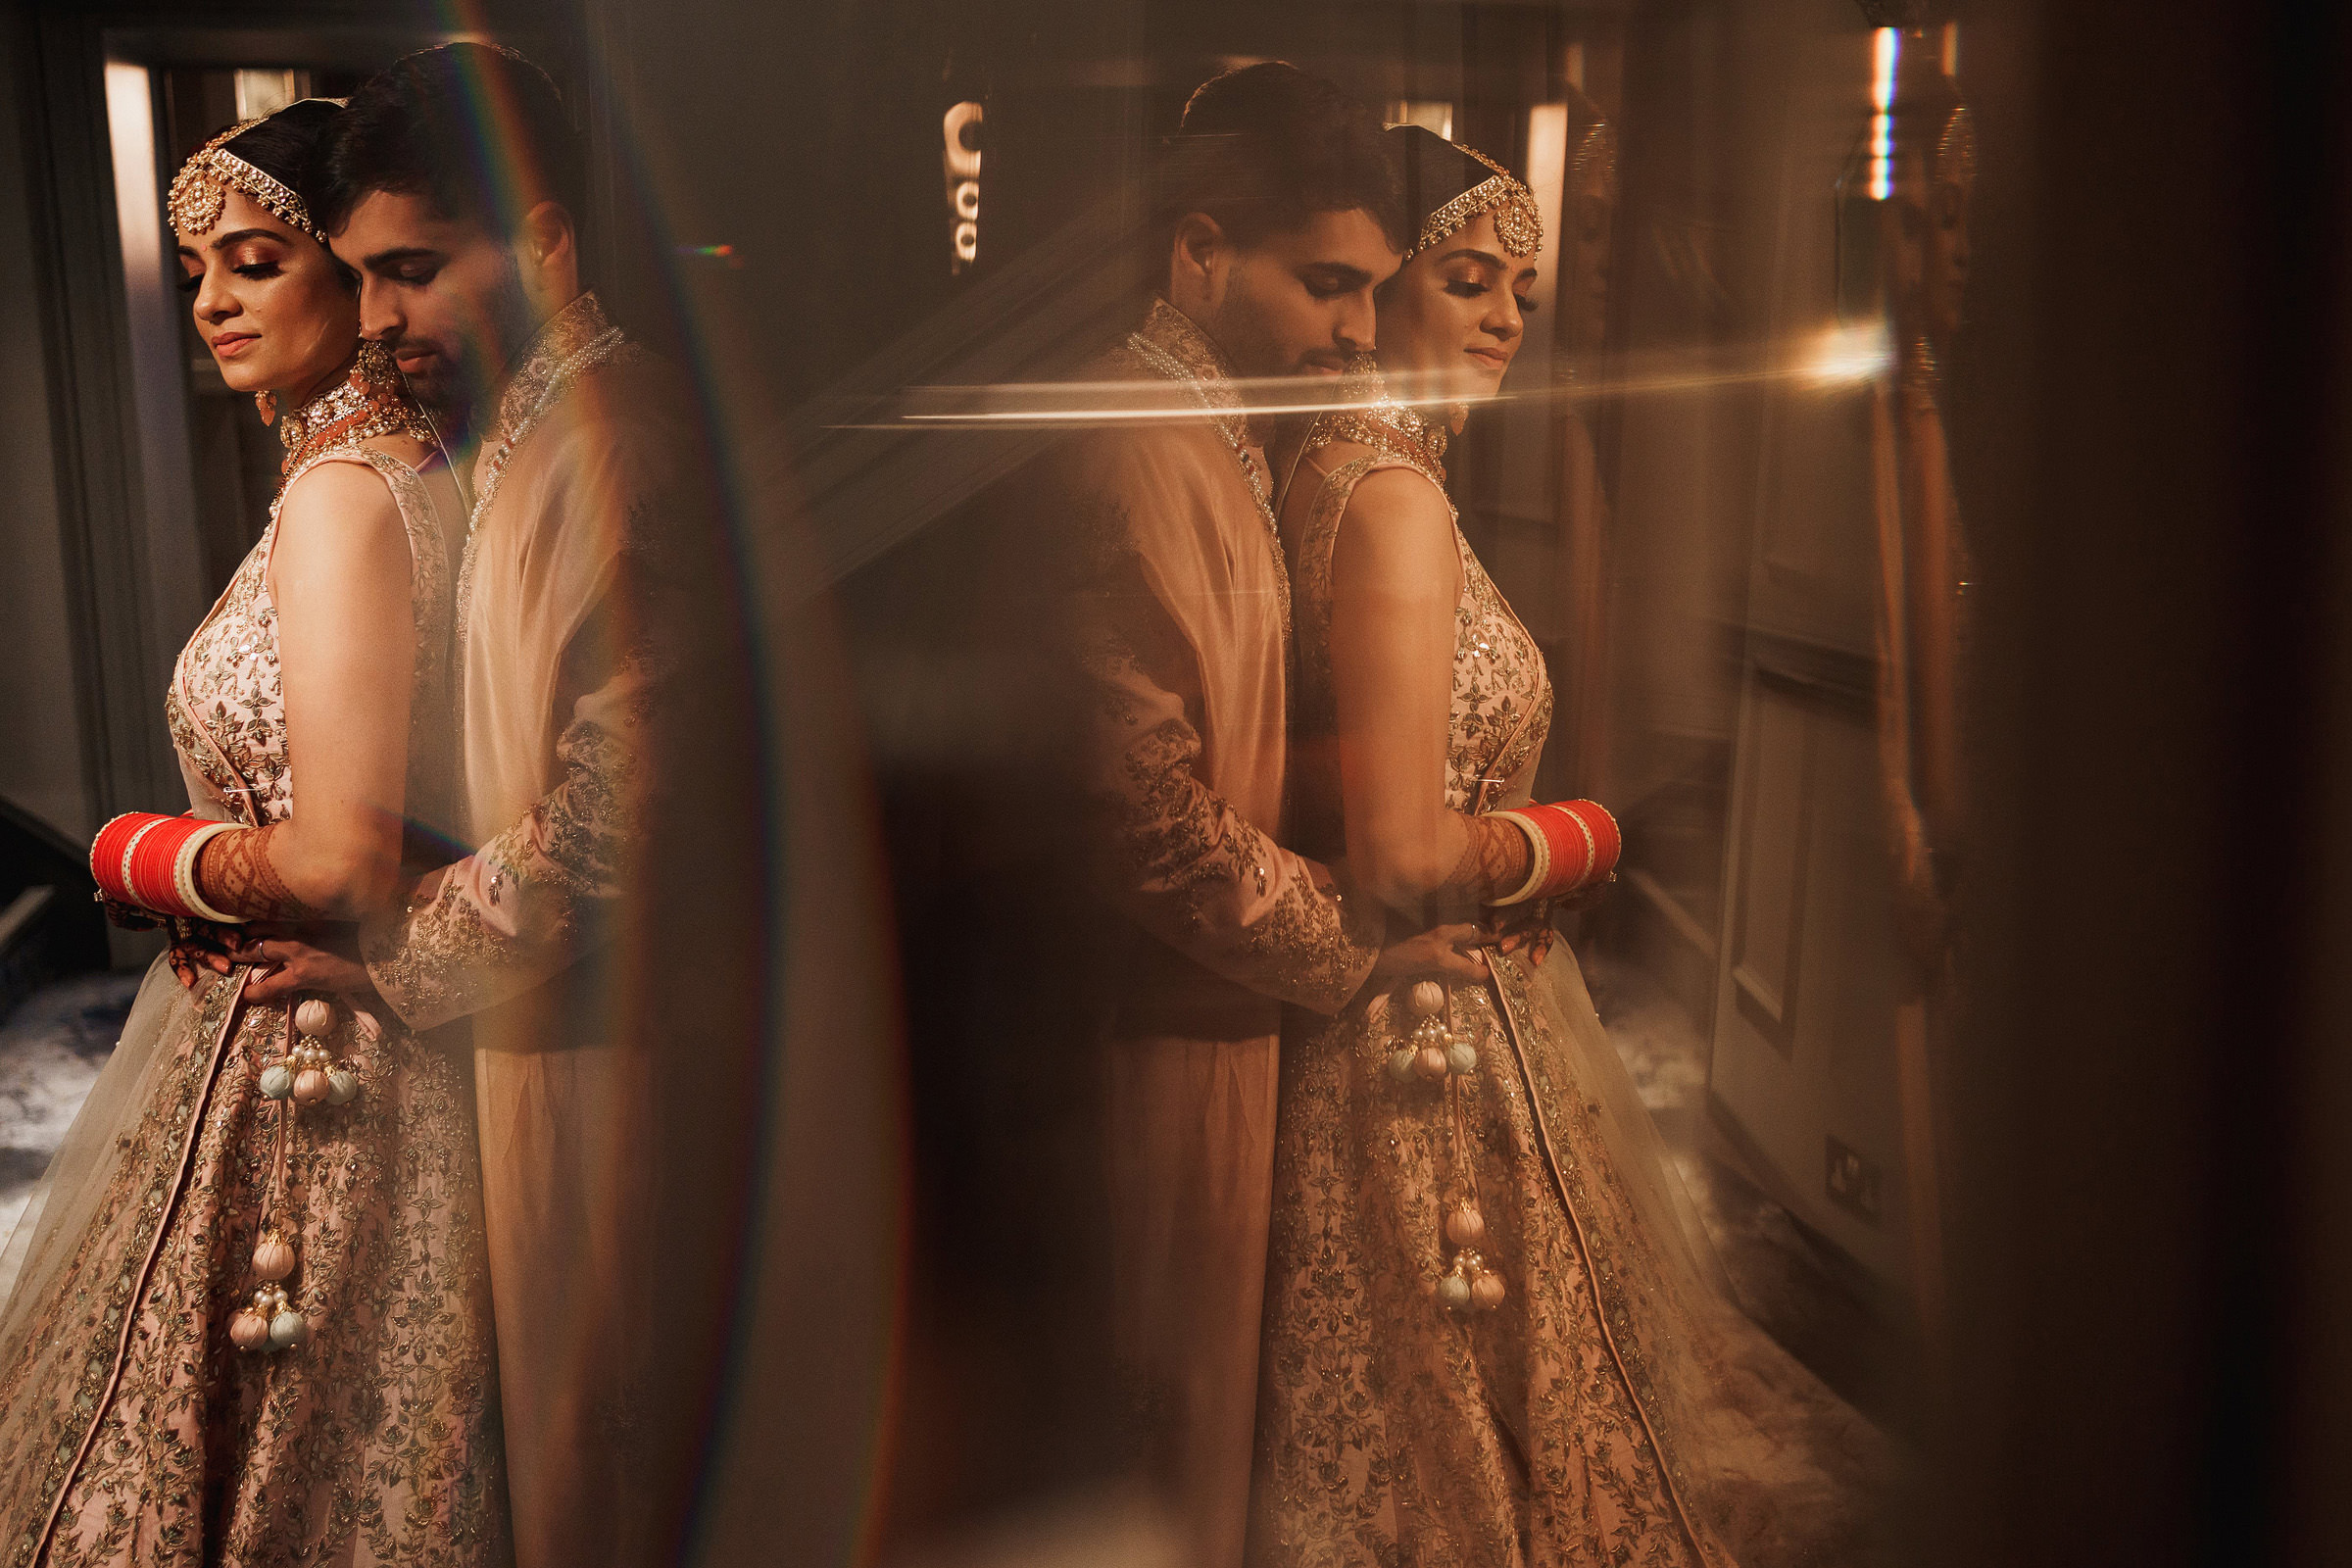 Indian bride and groom reflected in mirror - photo by f5 London photographer